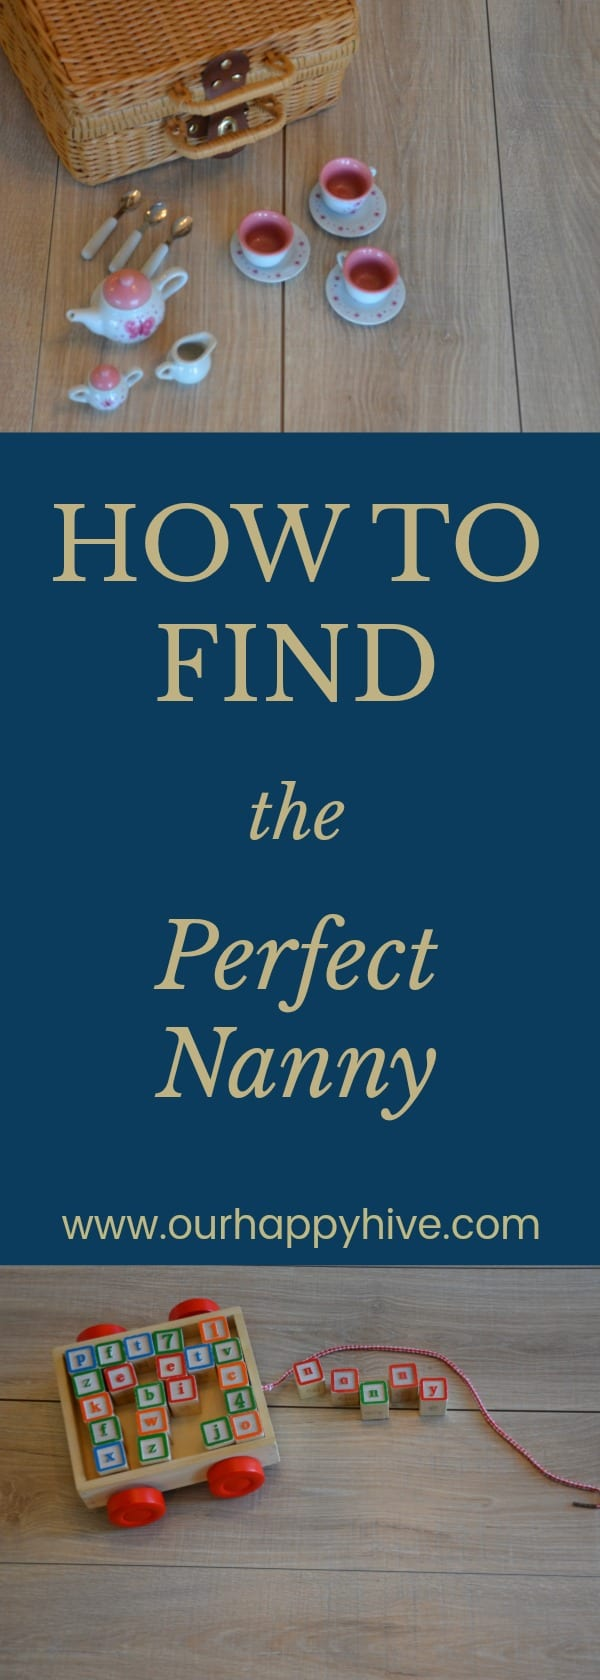 Nanny, Interview, Childcare, How to find a nanny, babysitter, working mom, WFHM